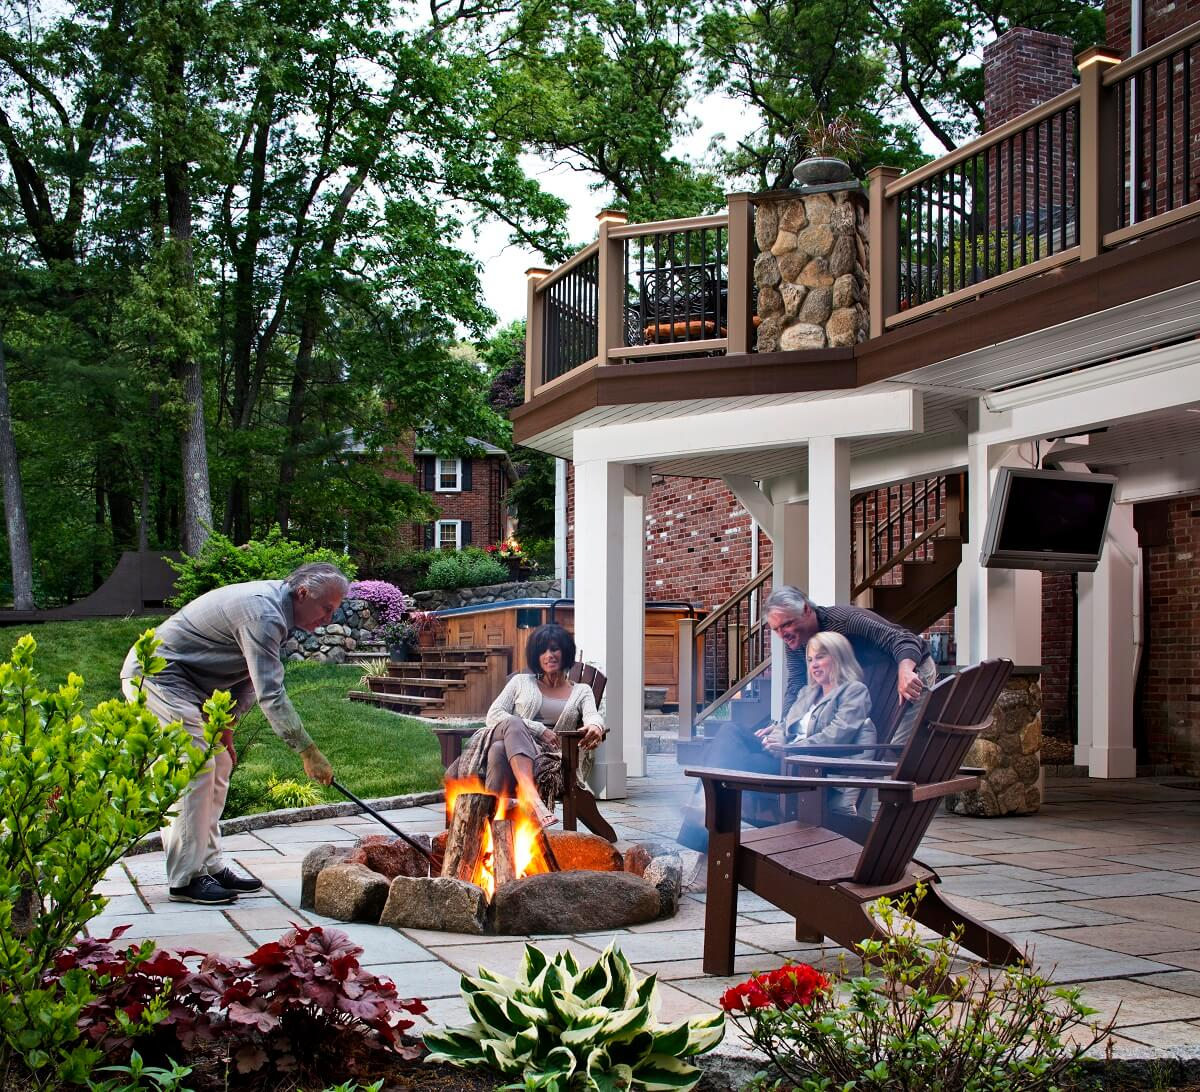 Family enjoying fire pit on patio